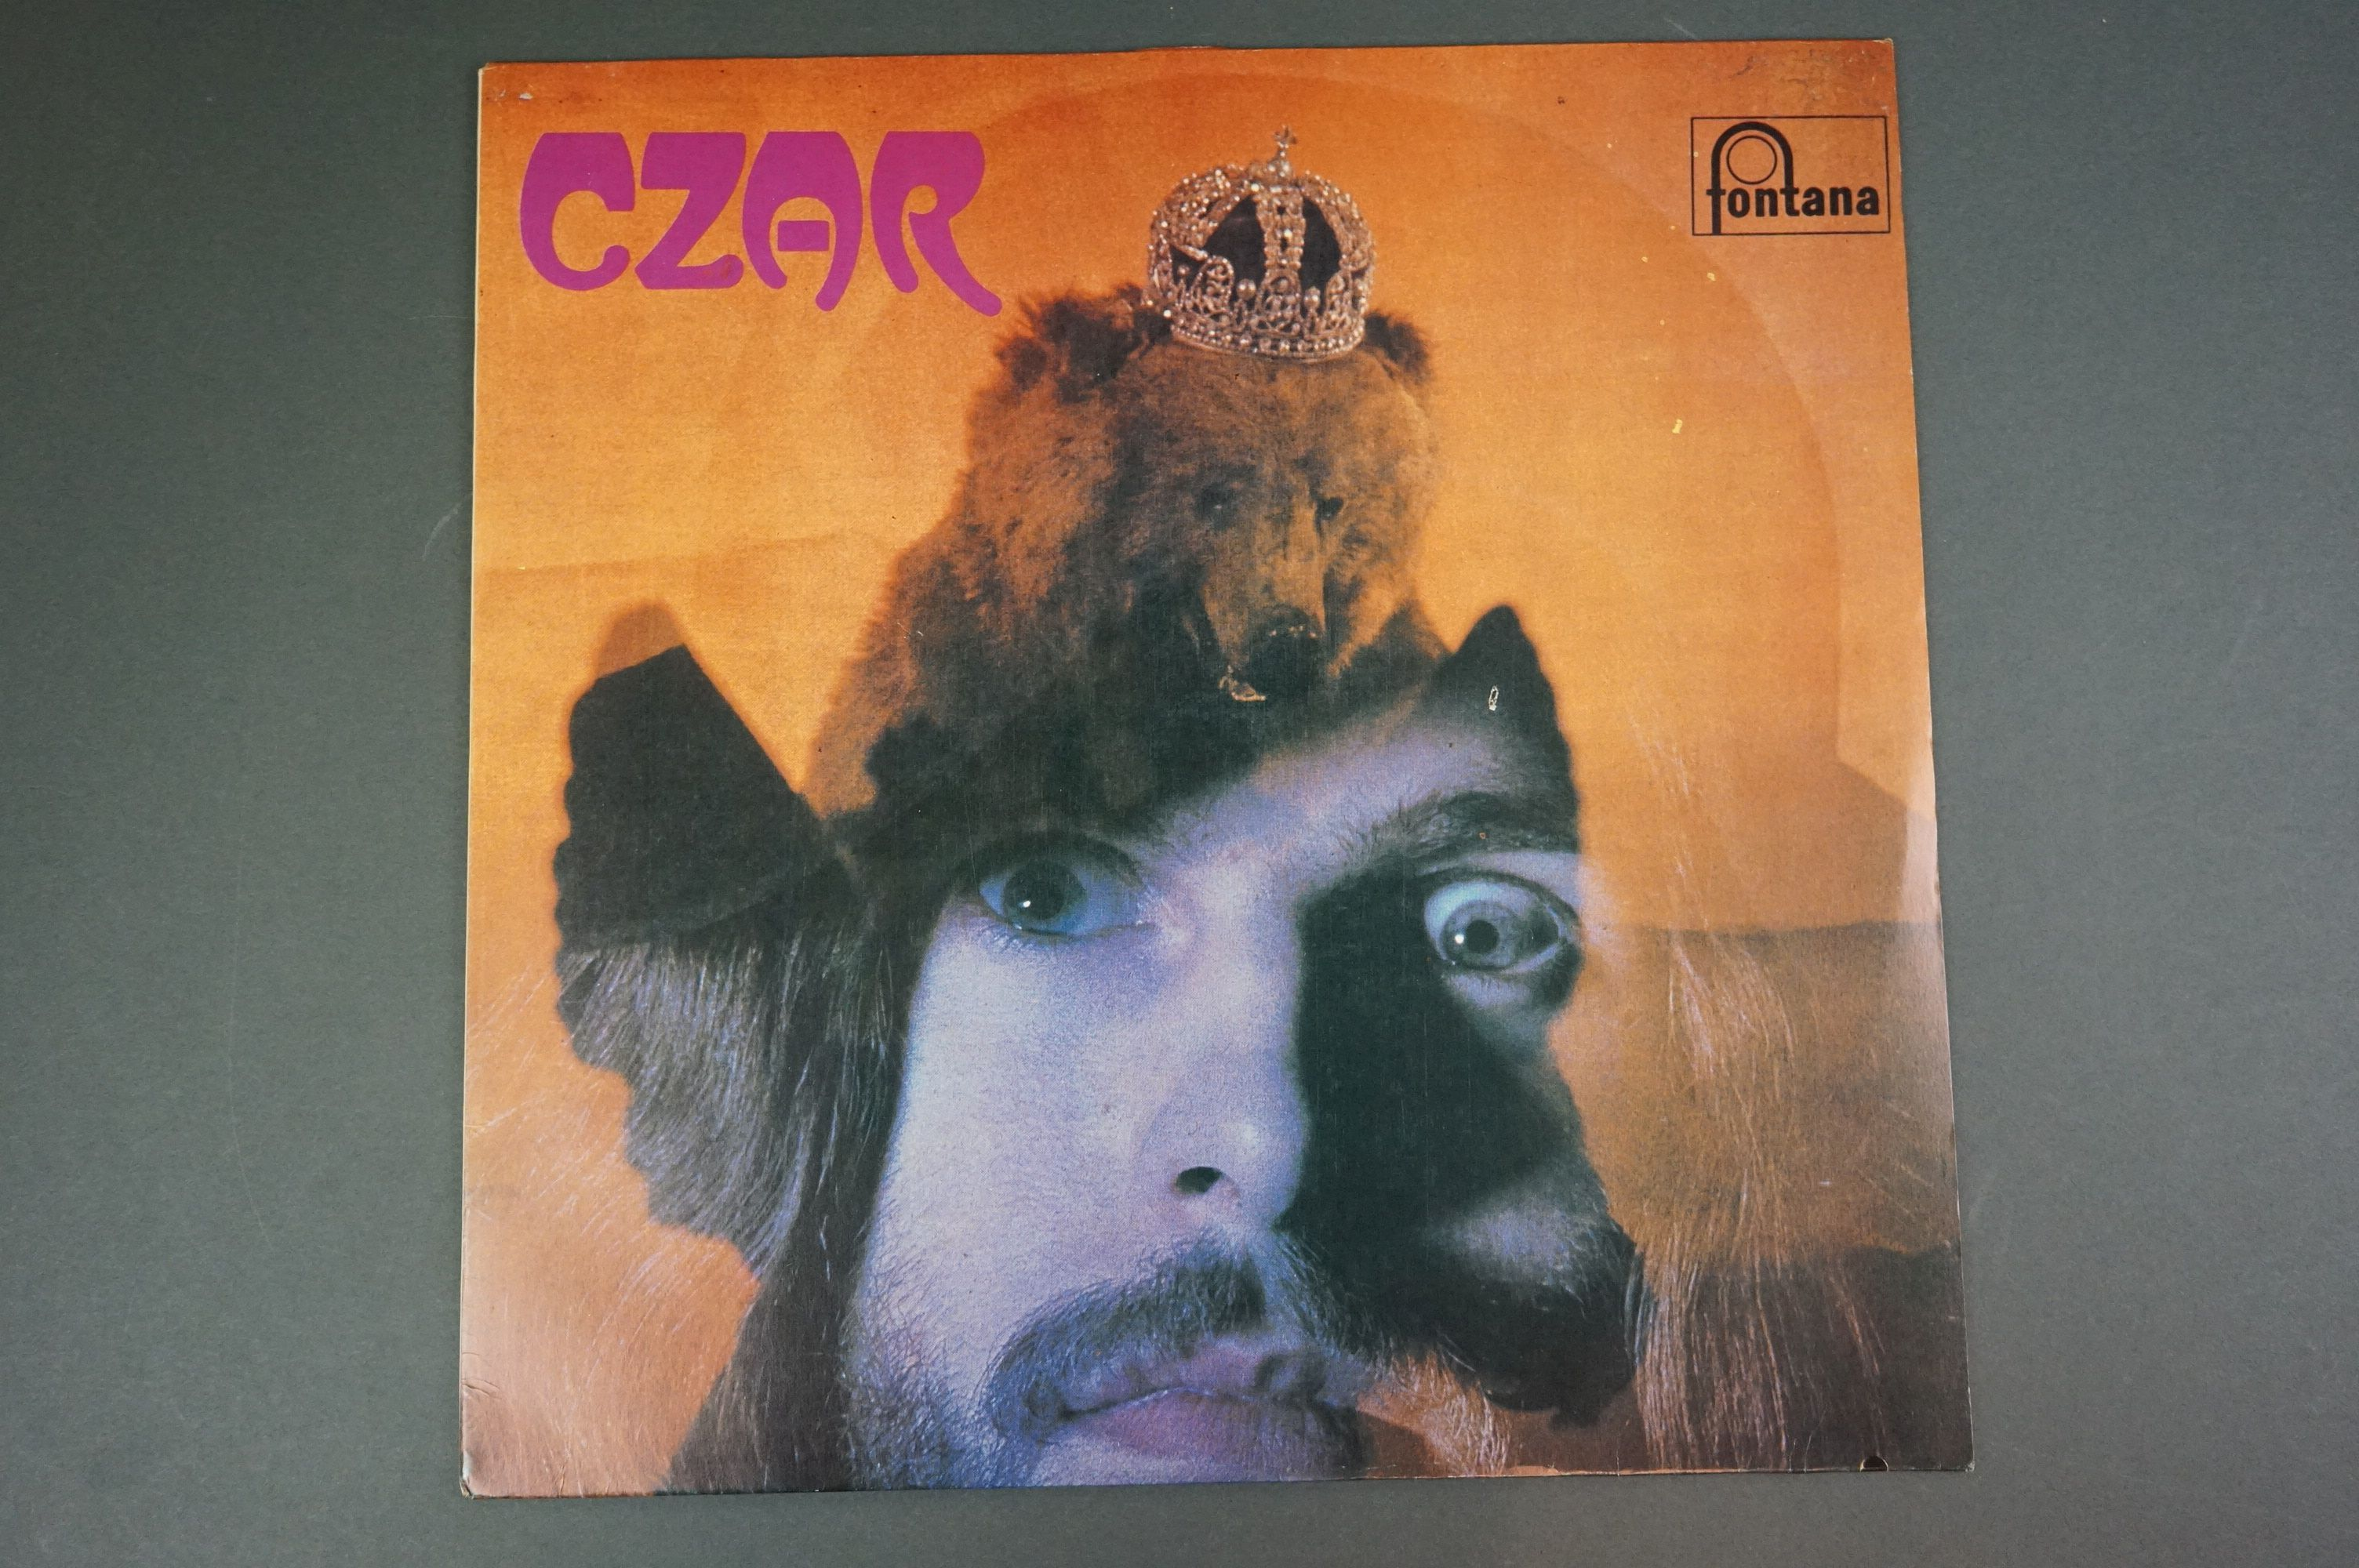 Vinyl - Czar self titled 6360009 unofficial release white album, with titles 33 and one third and